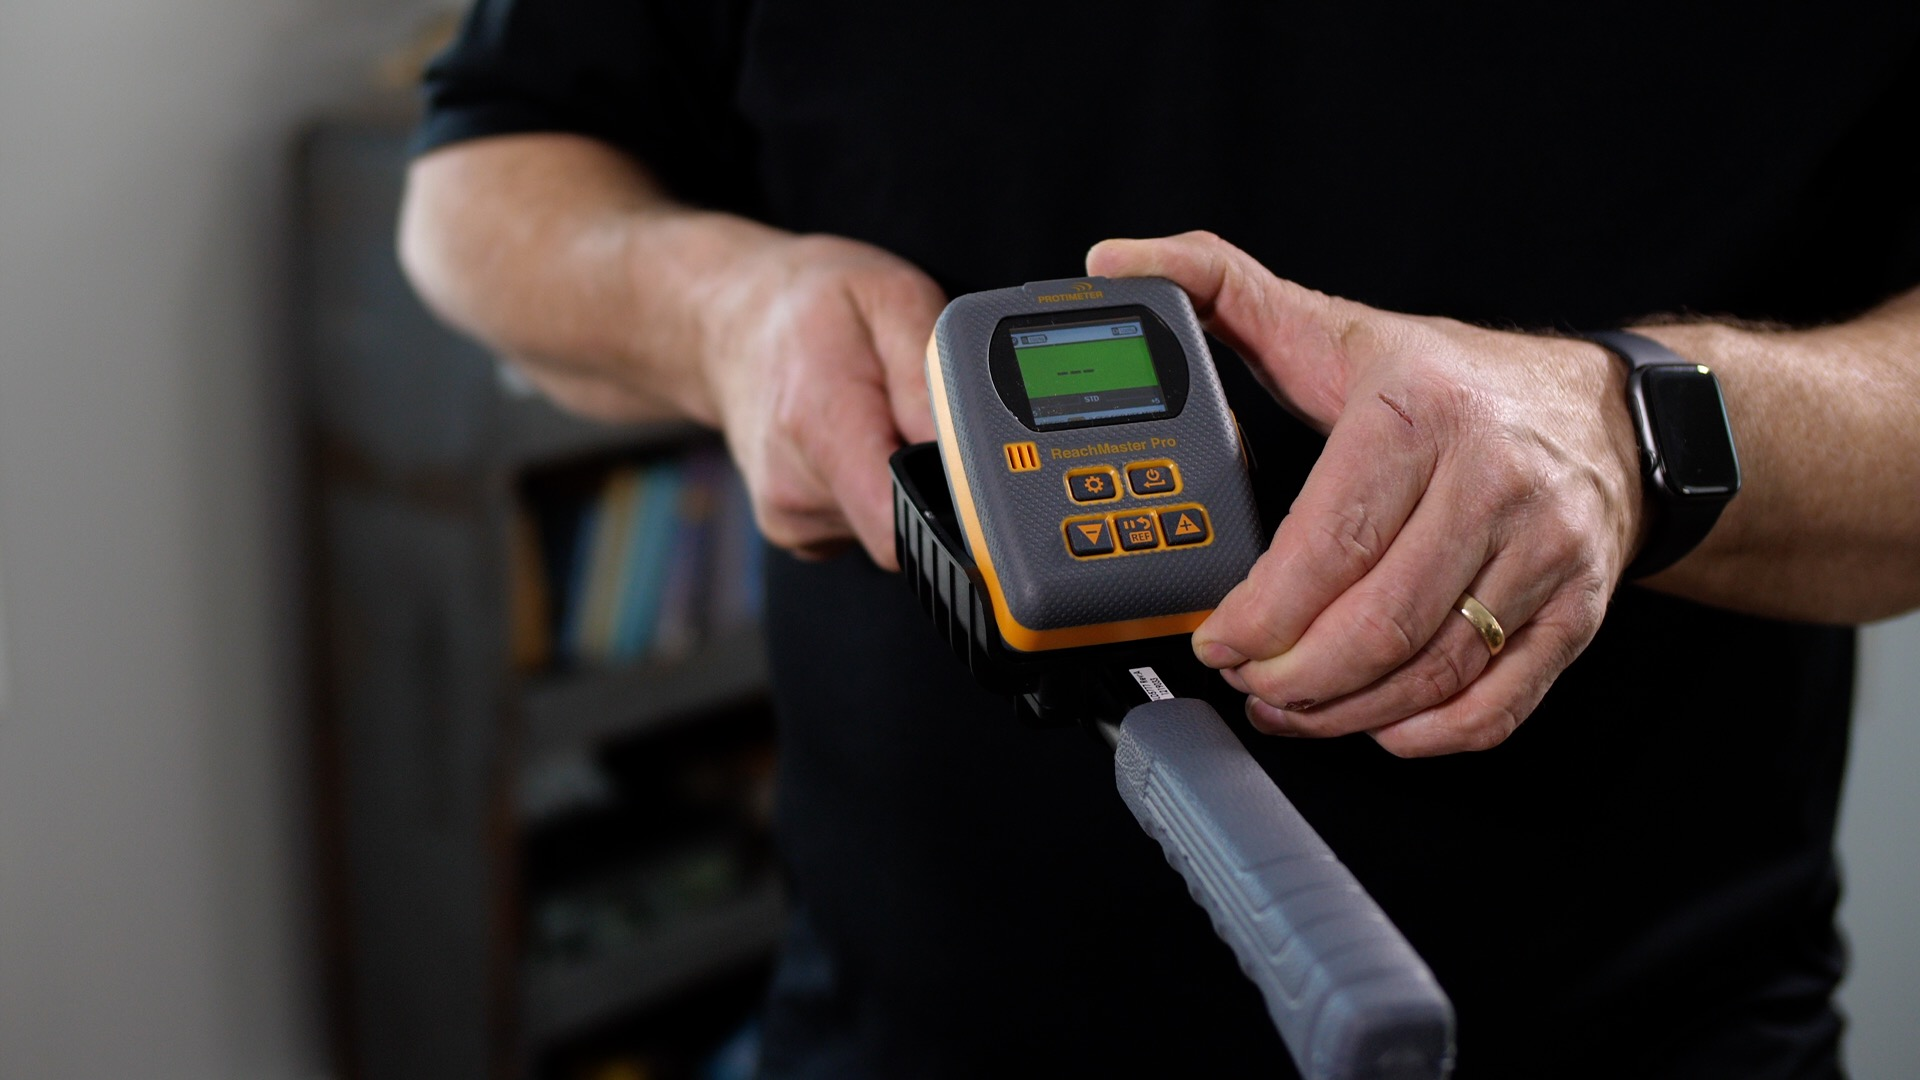 Home Inspection Training: Using a Moisture Meter